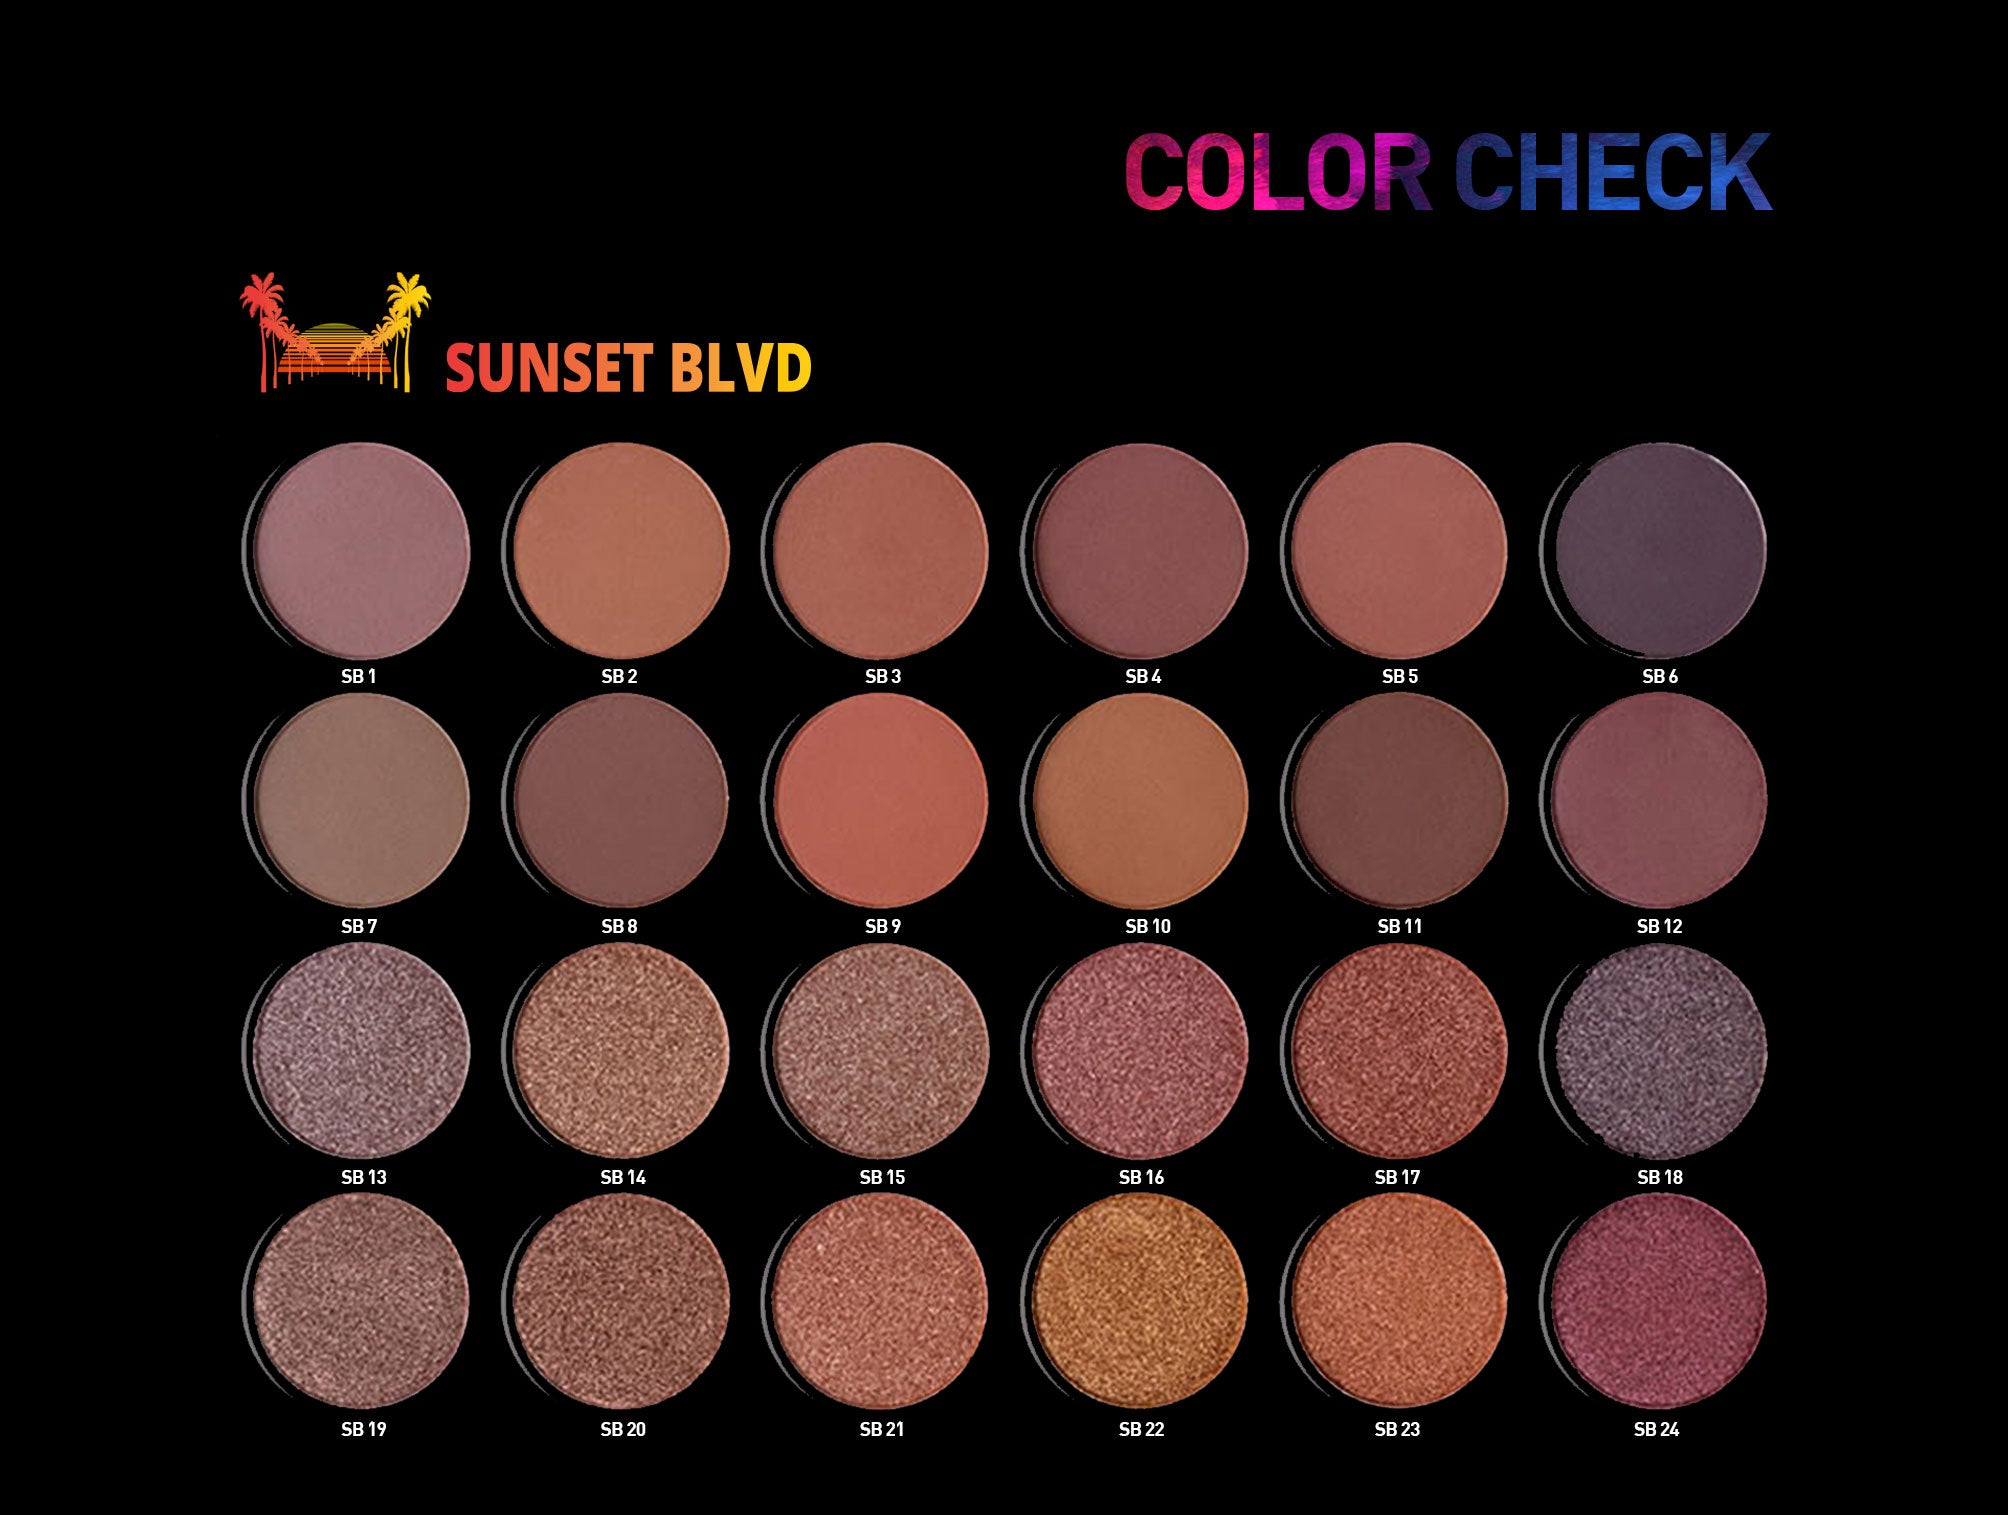 Sunset Blvd - 24 Shade Eyeshadow Palette ESP101